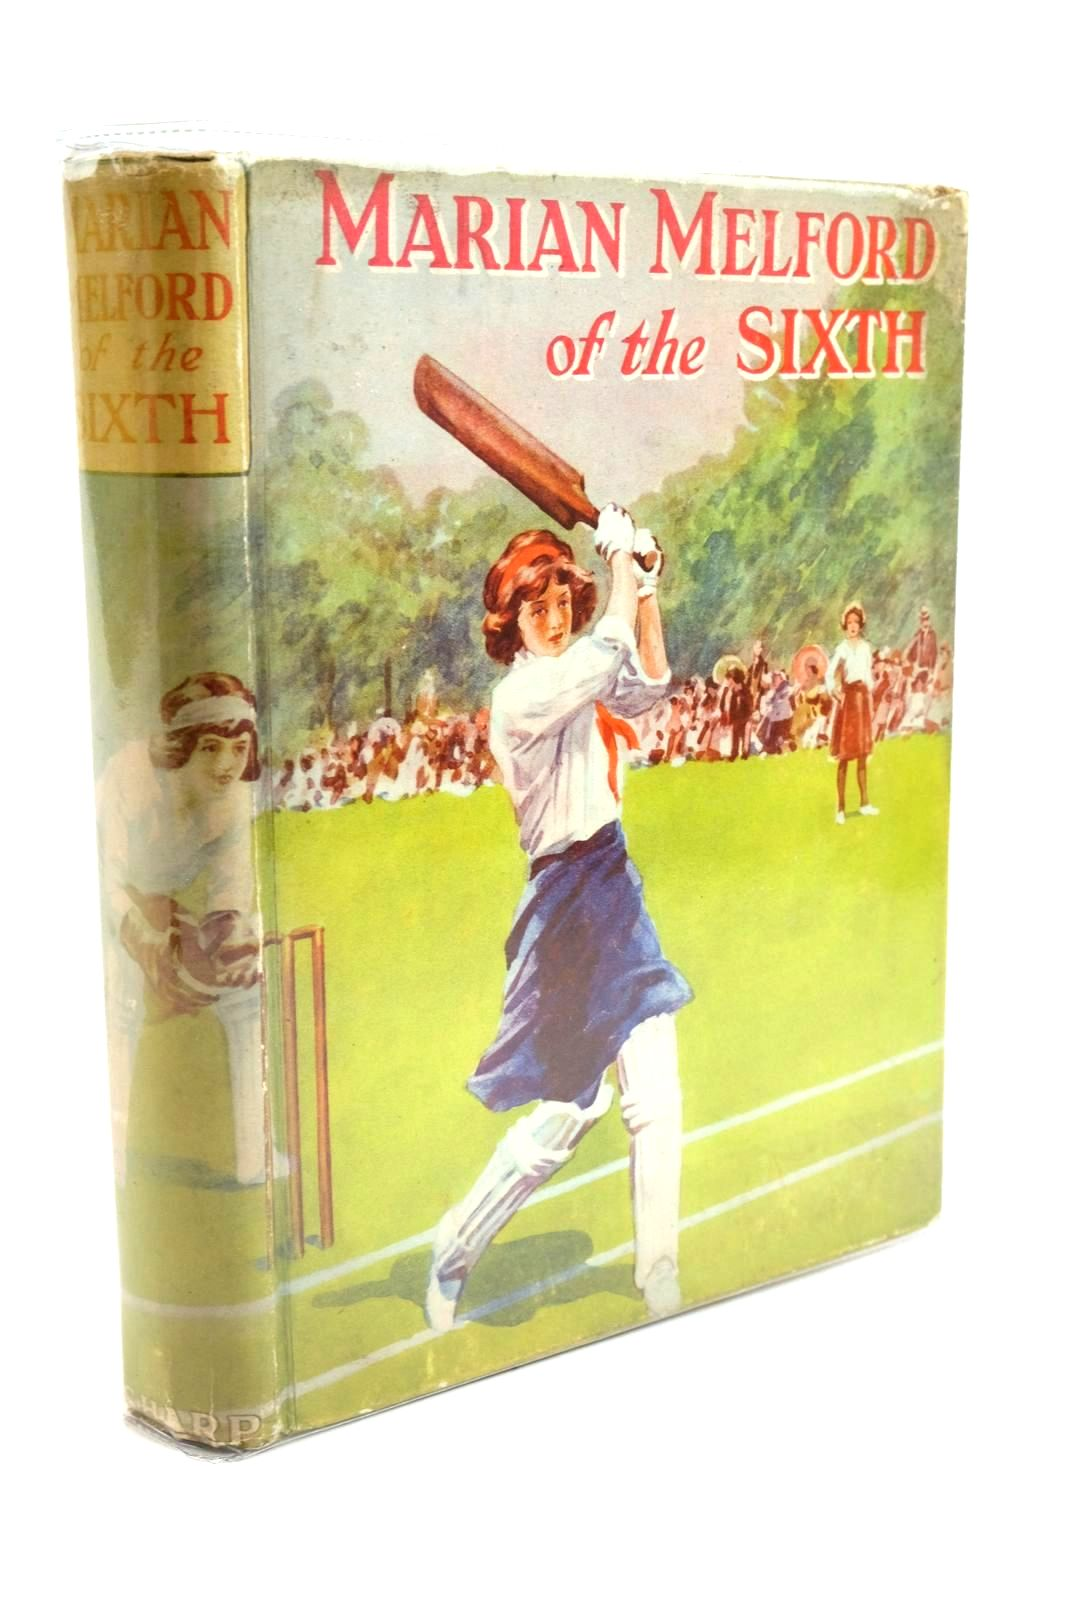 Photo of MARION MELFORD OF THE SIXTH AND OTHER STORIES- Stock Number: 1321701